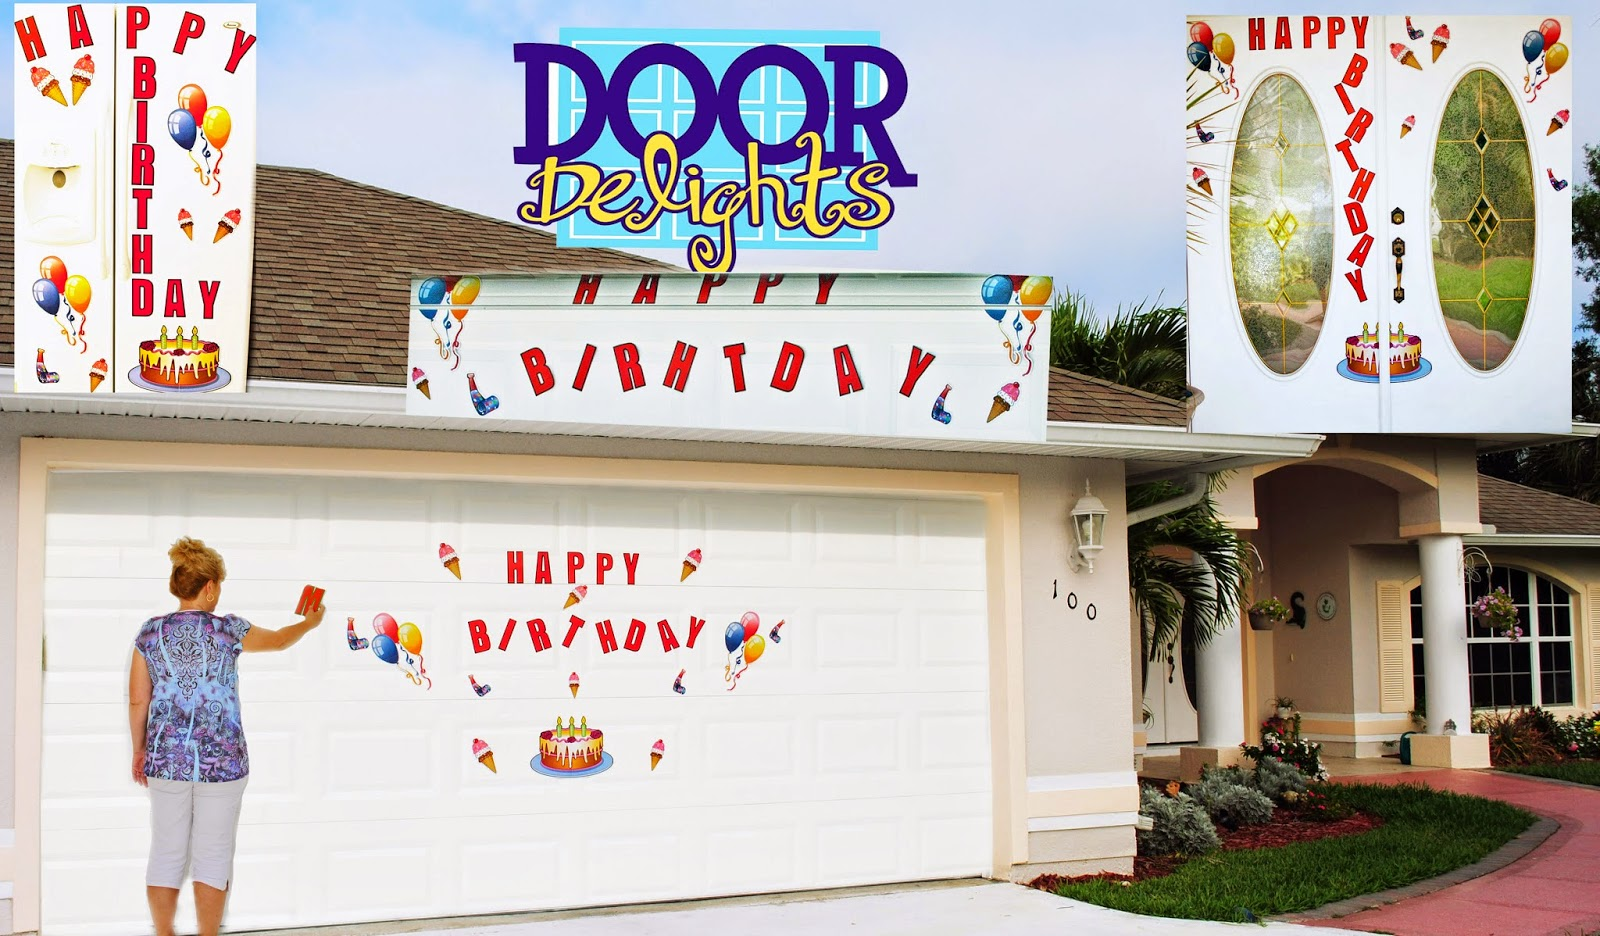 Was I Grateful That I Own Door Delights For My Garage Door, YES.